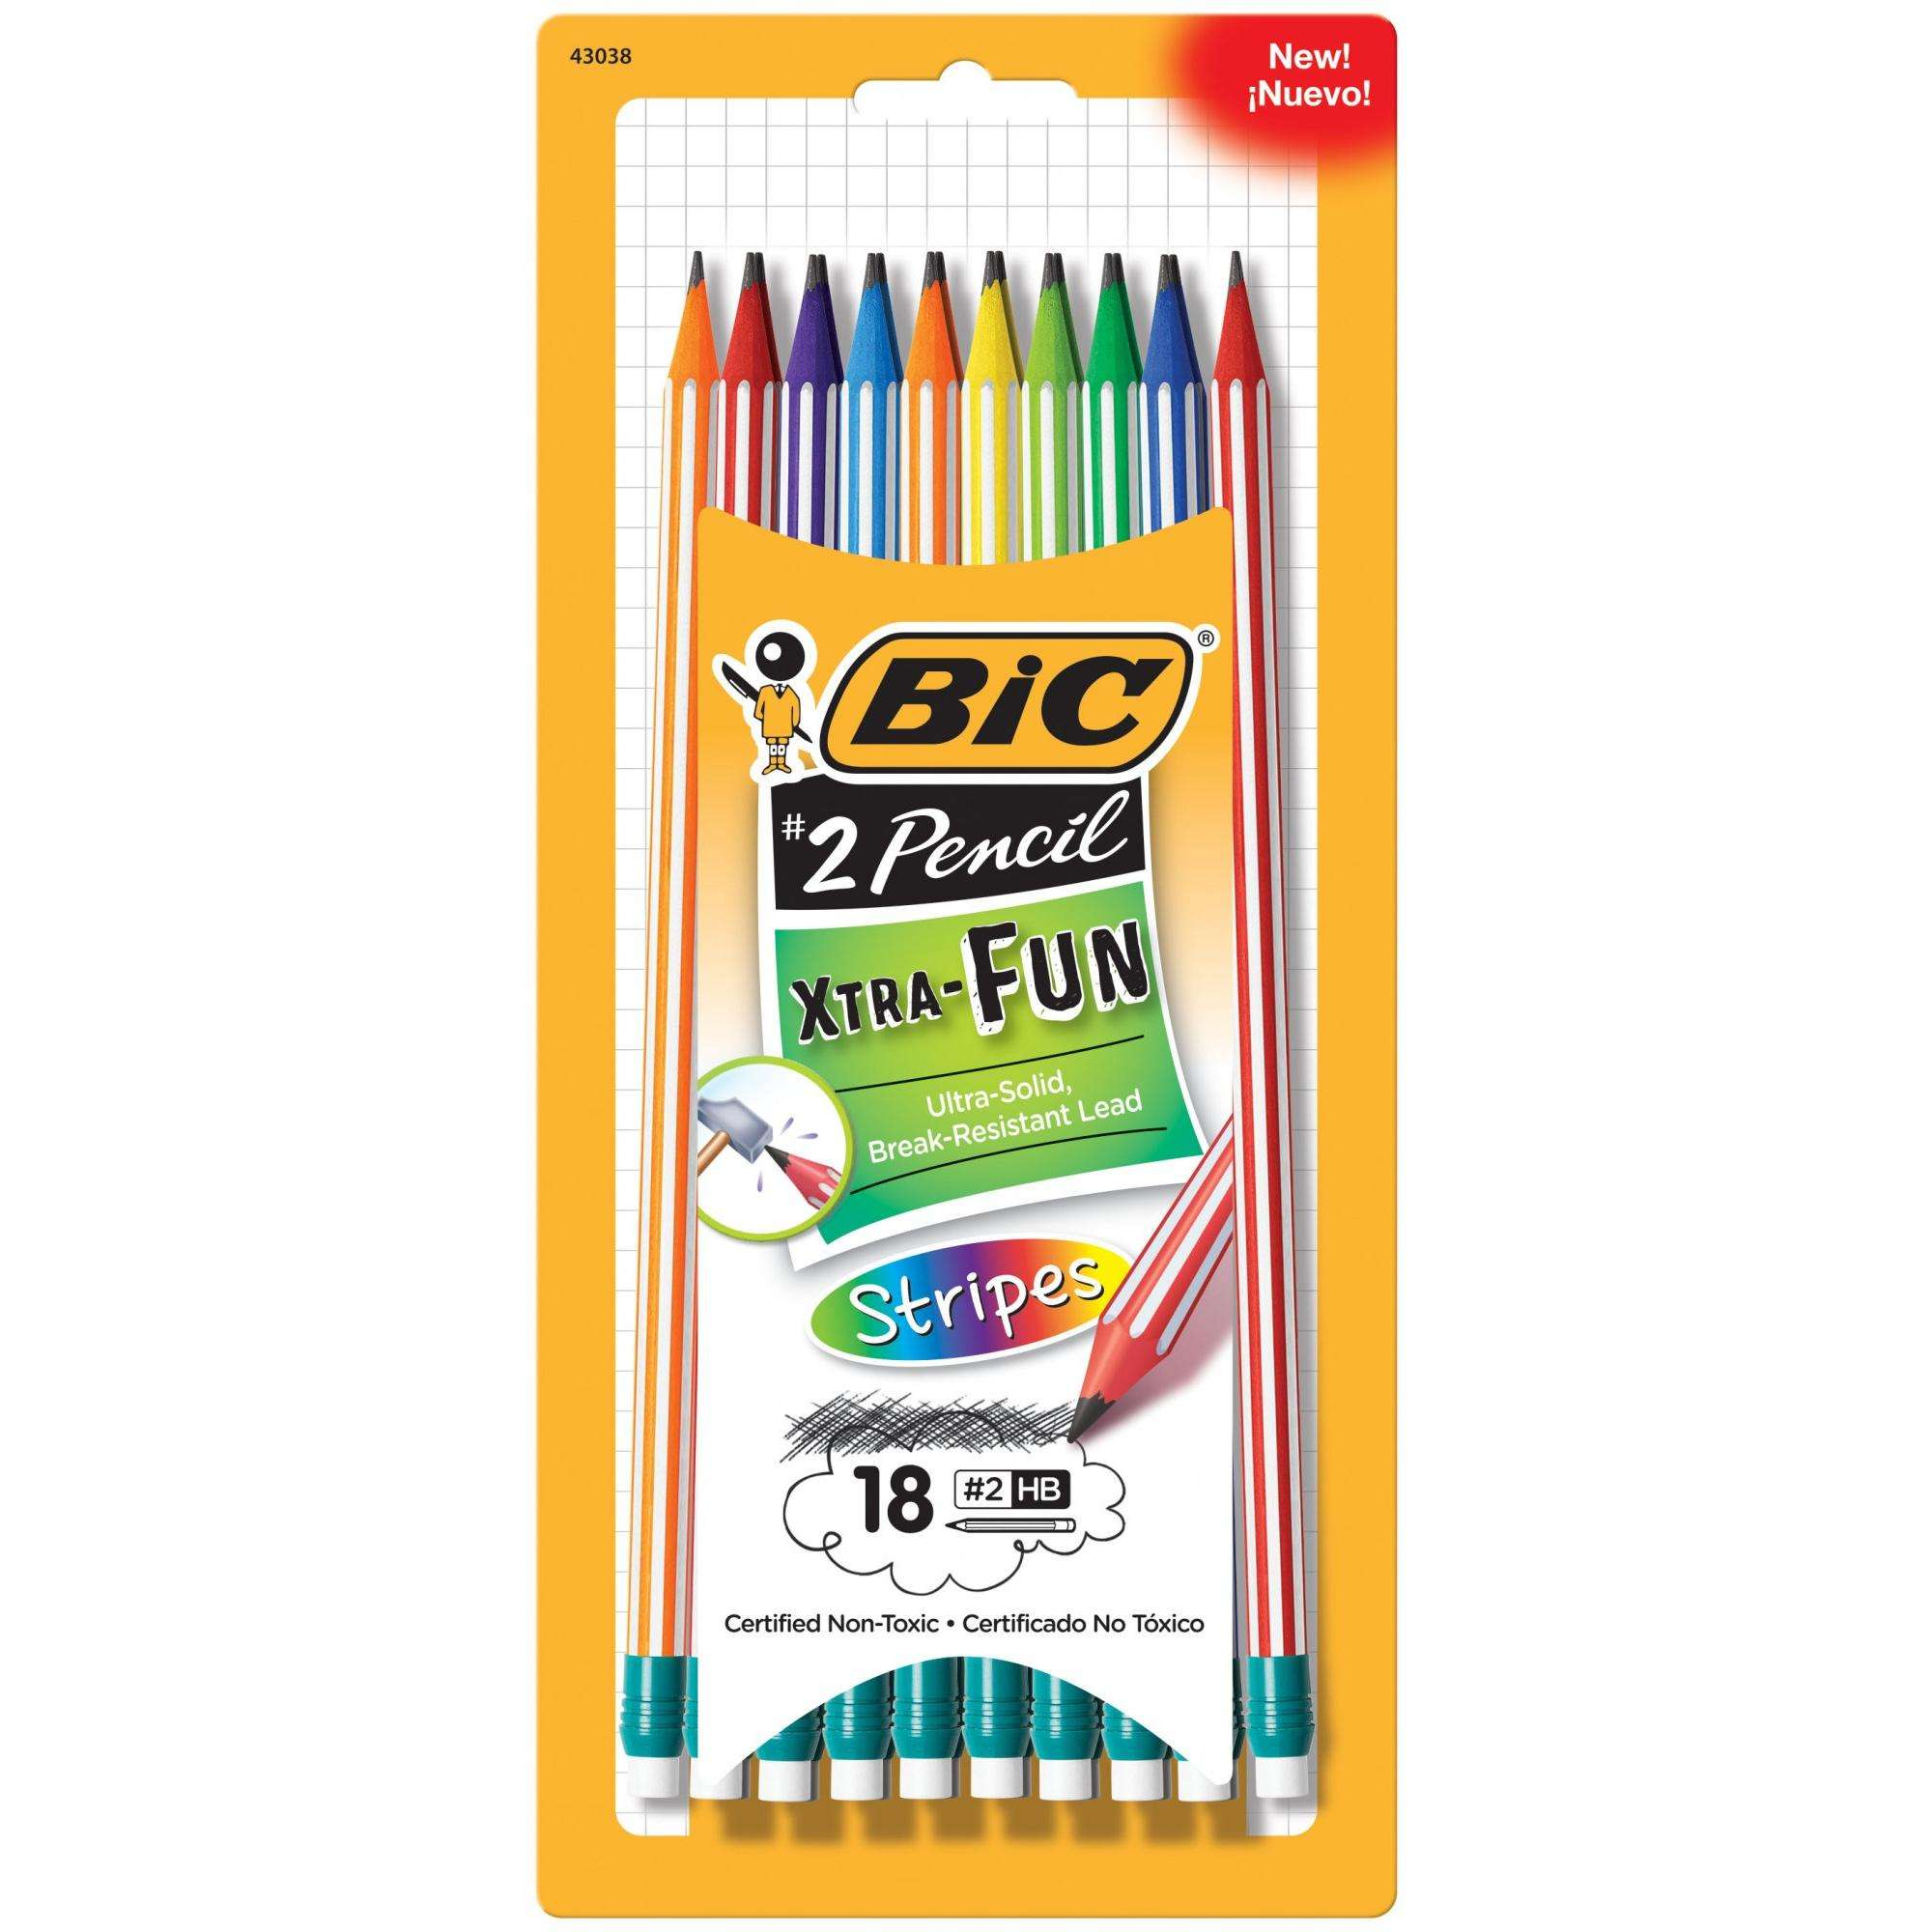 Bic Xtra-Fun Stripes Woodcase Pencils, #2 HB, Black Lead, 18-Count